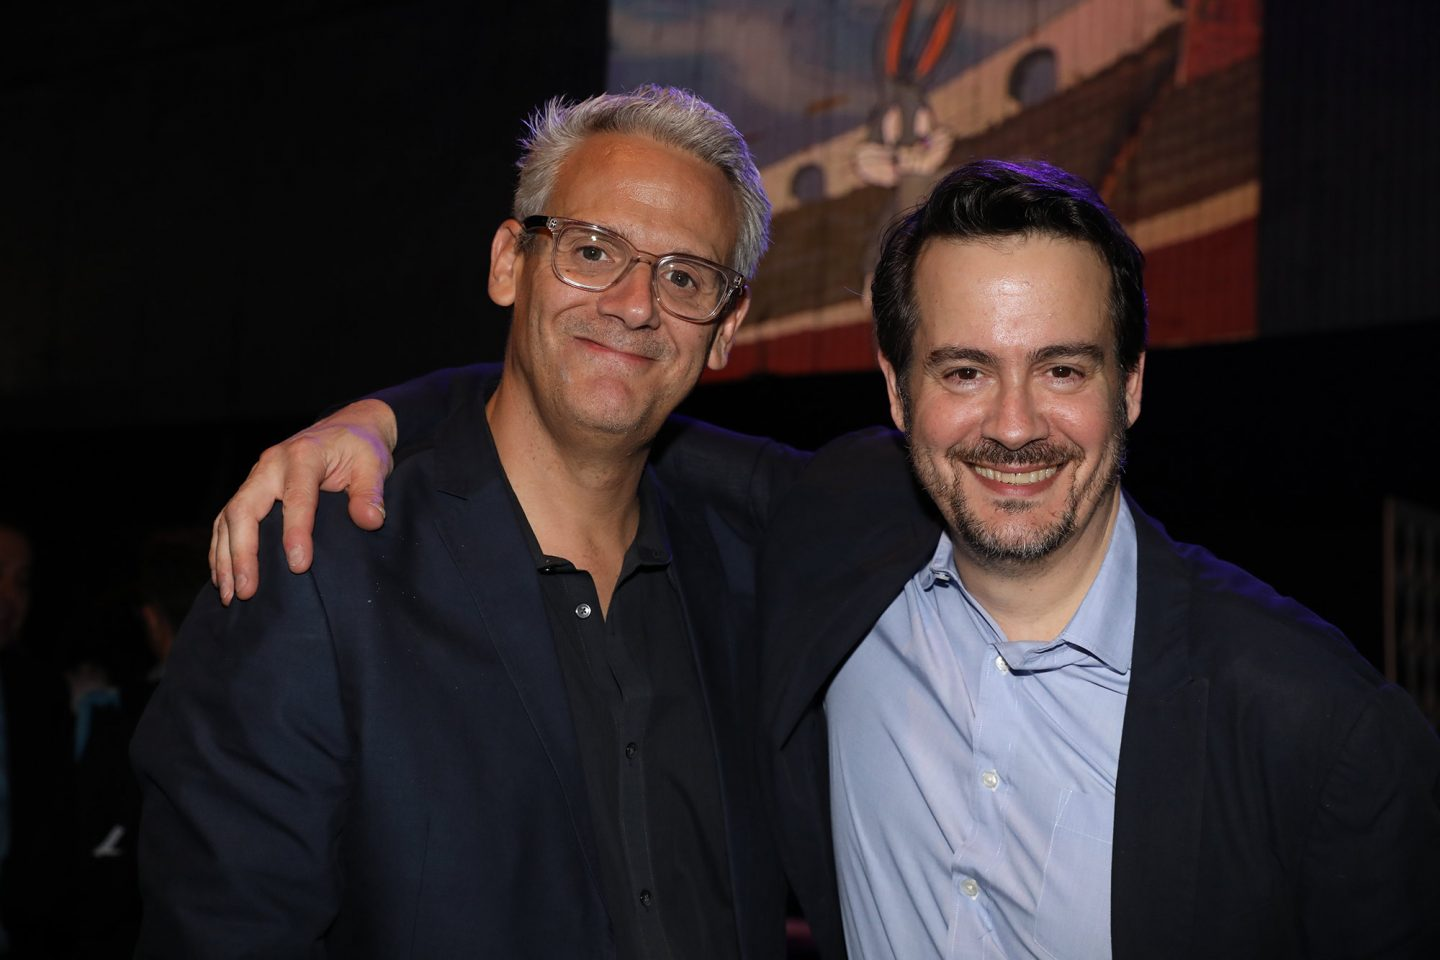 From l-r, Sam Register and Peter Girardi (executive vice president, Blue Ribbon Content and executive vice president, alternative programming, Warner Bros. Animation).